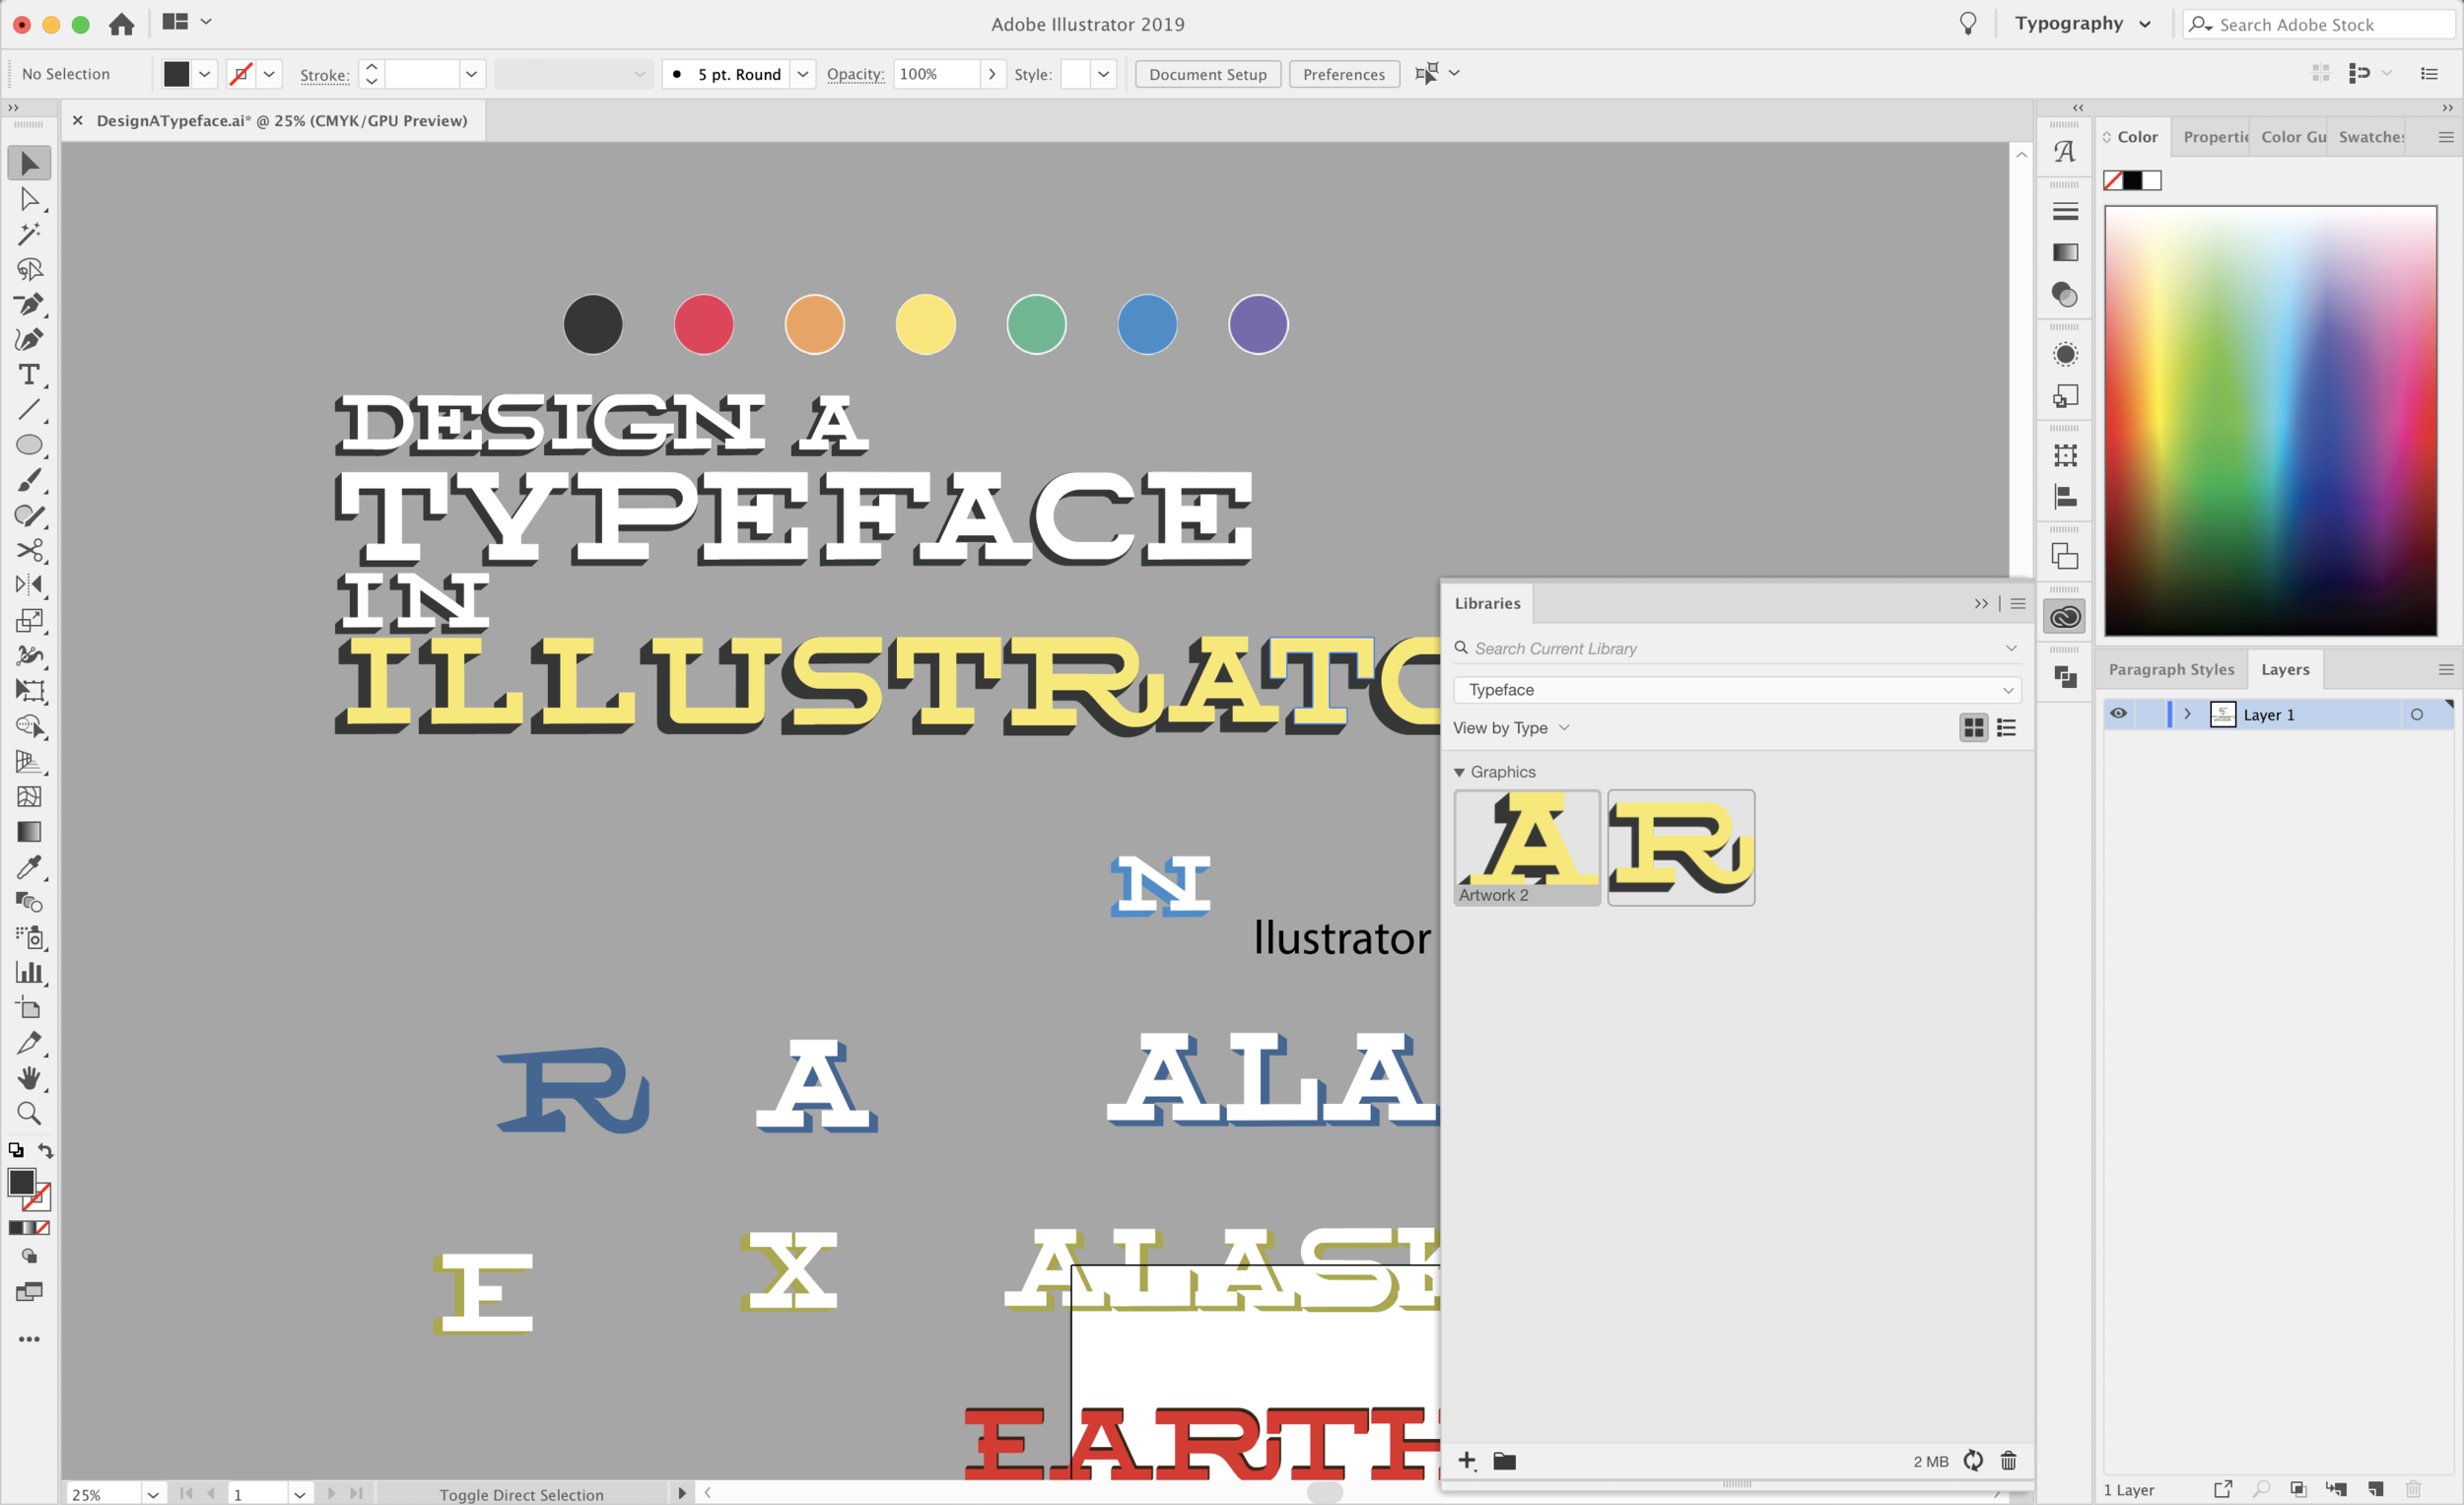 Using  Adobe CC Libraries  to upload each letter so they can be used in any Adobe Product.